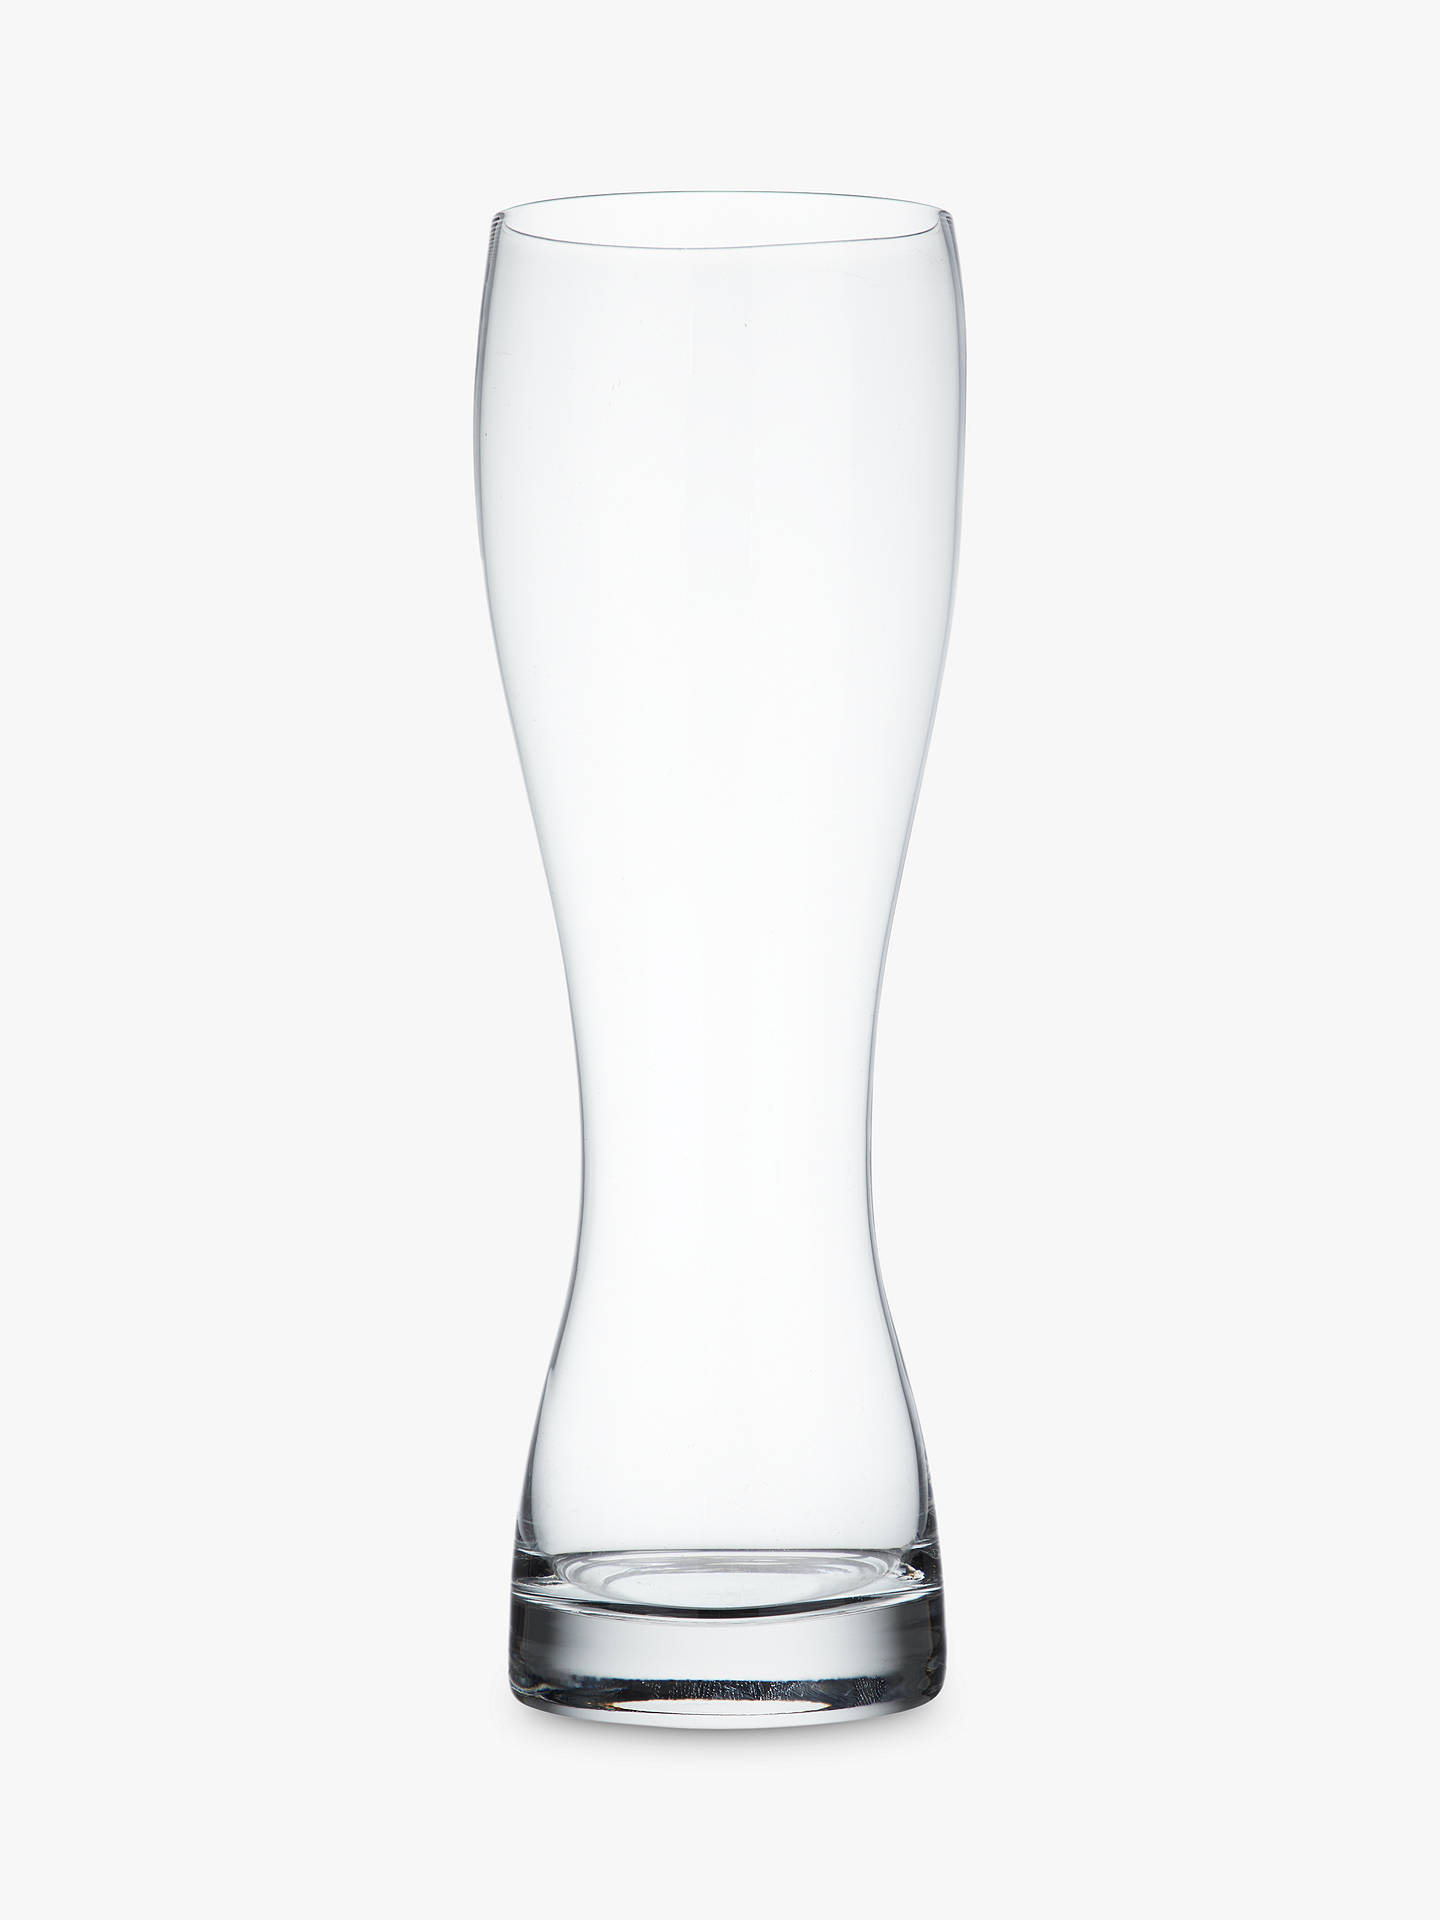 BuyJohn Lewis & Partners Cellar Wheat Beer Glasses, Clear, 670ml, Set of 2 Online at johnlewis.com